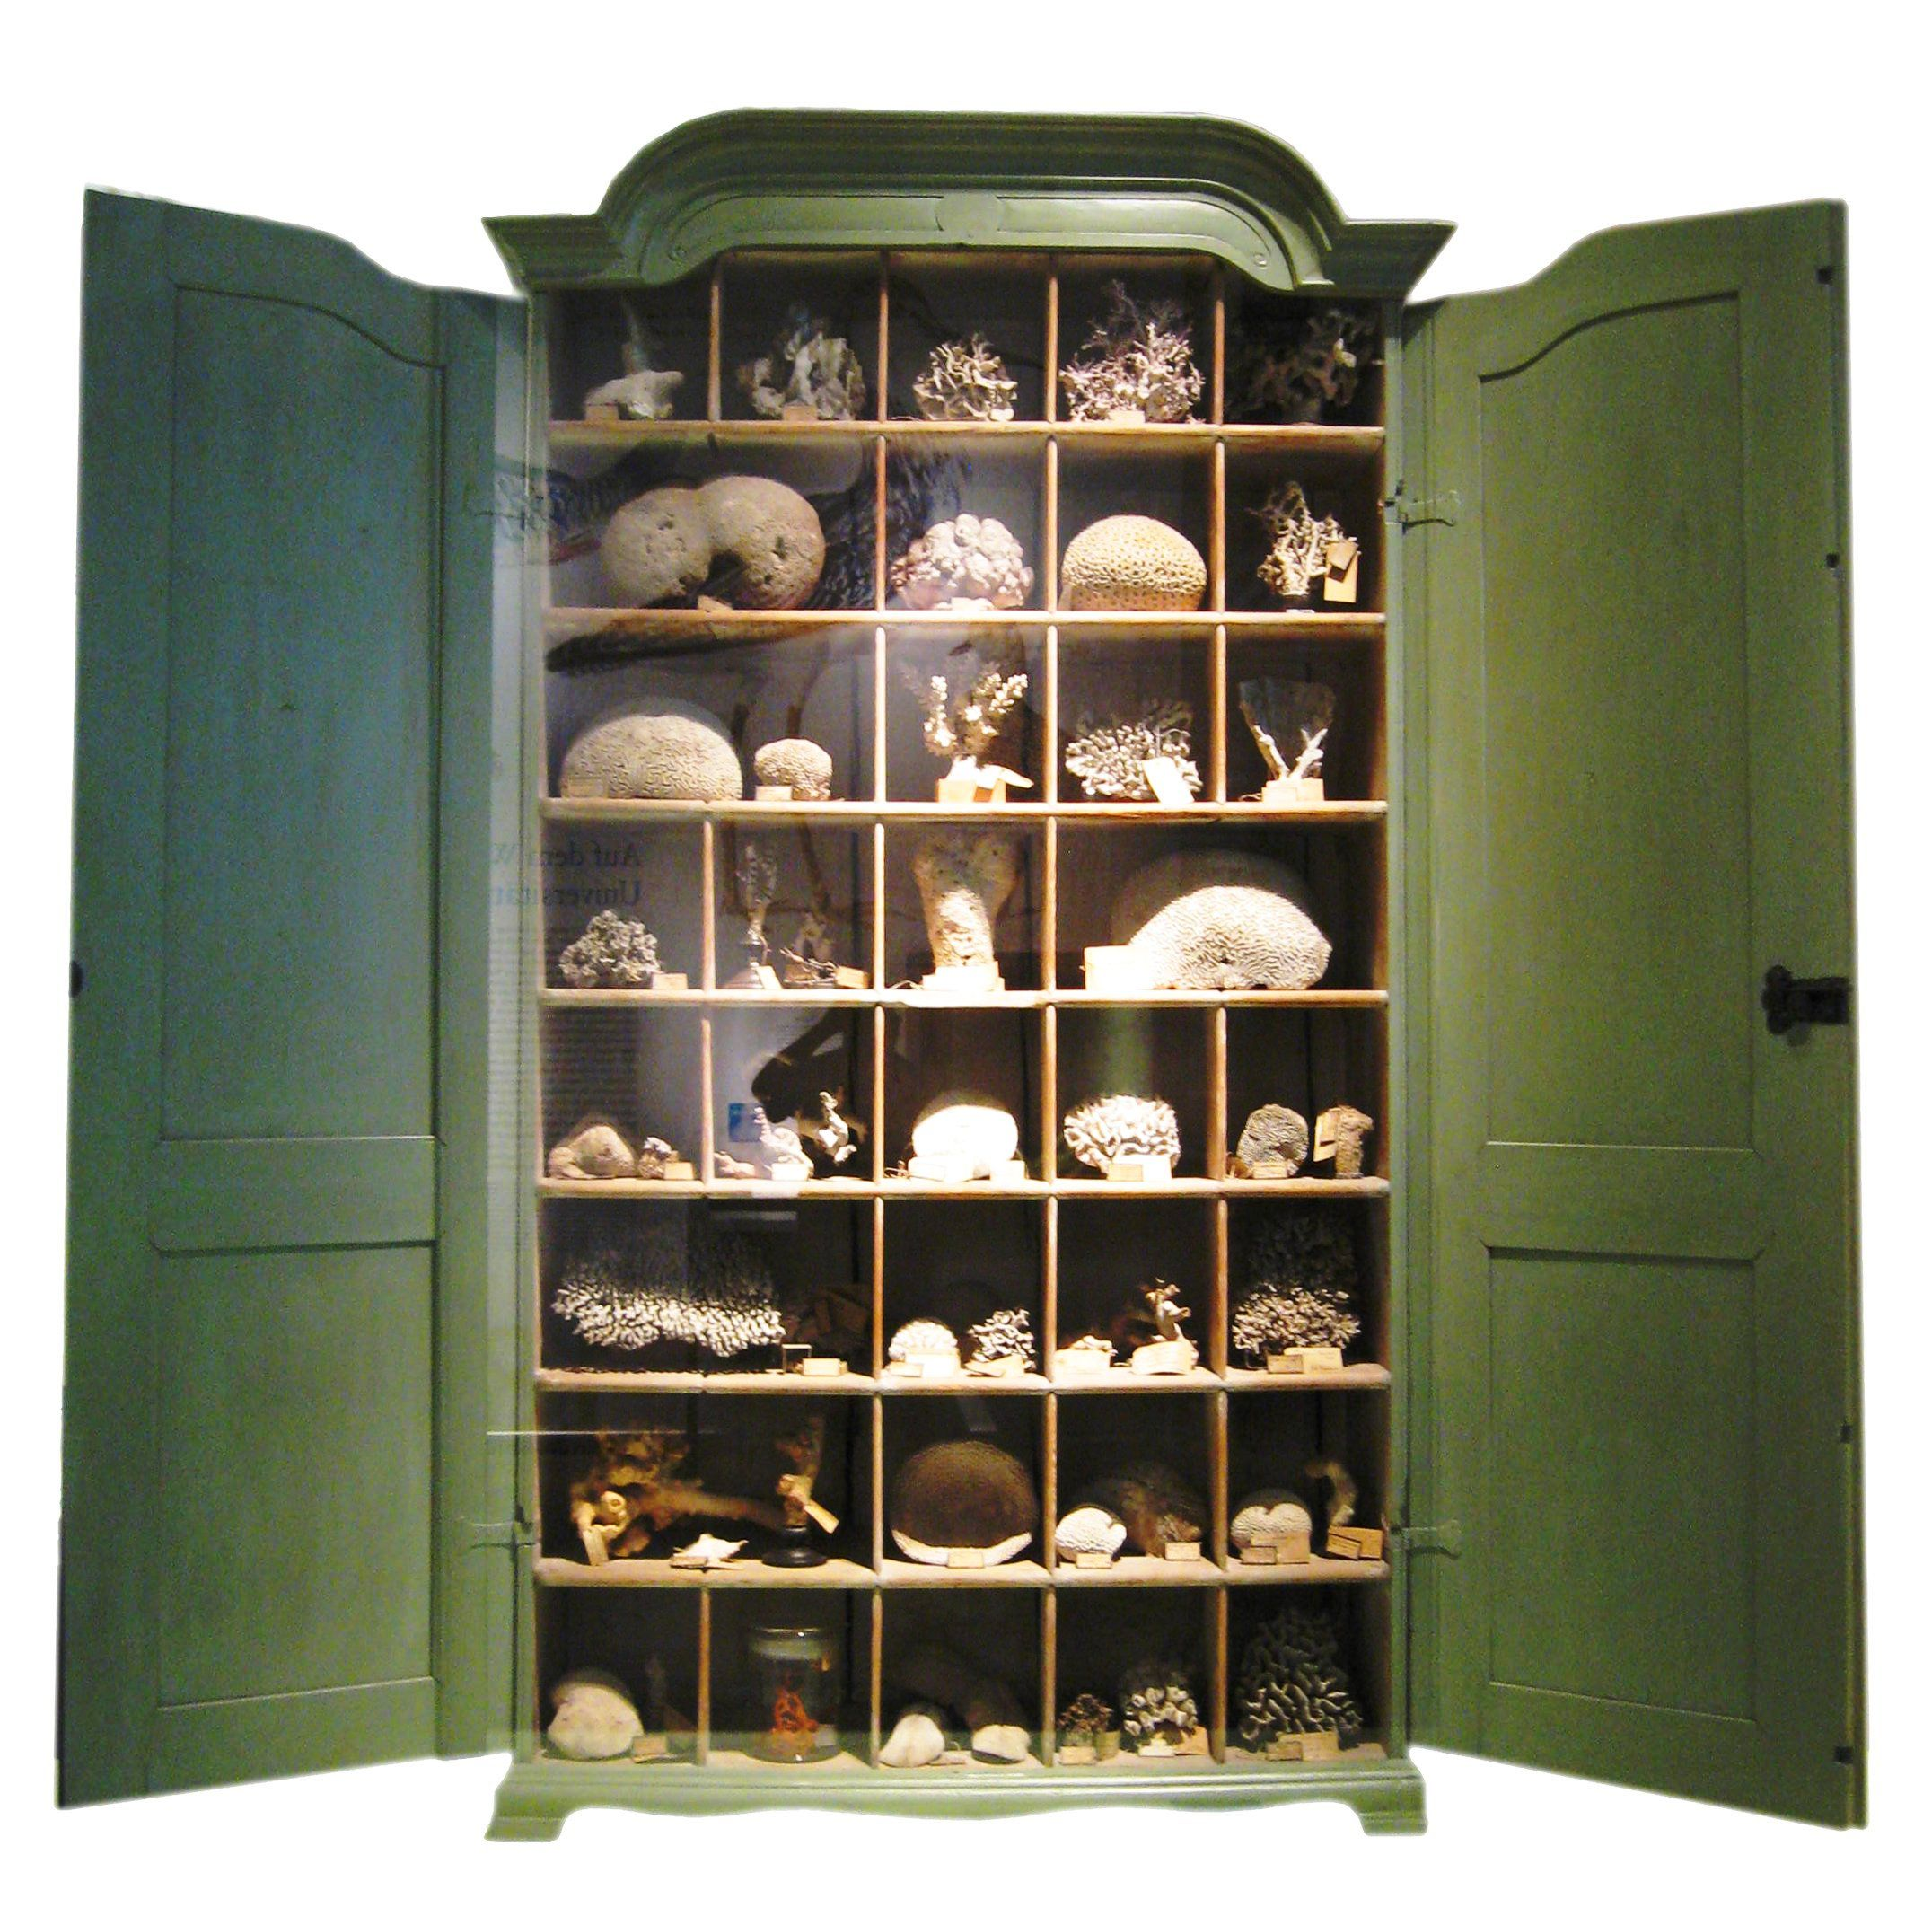 An Early 18th Century German Schrank With A Traditional Display Of Corals Naturkundenmuseum Cabinet Of Curiosities Natural Curiosities Displaying Collections